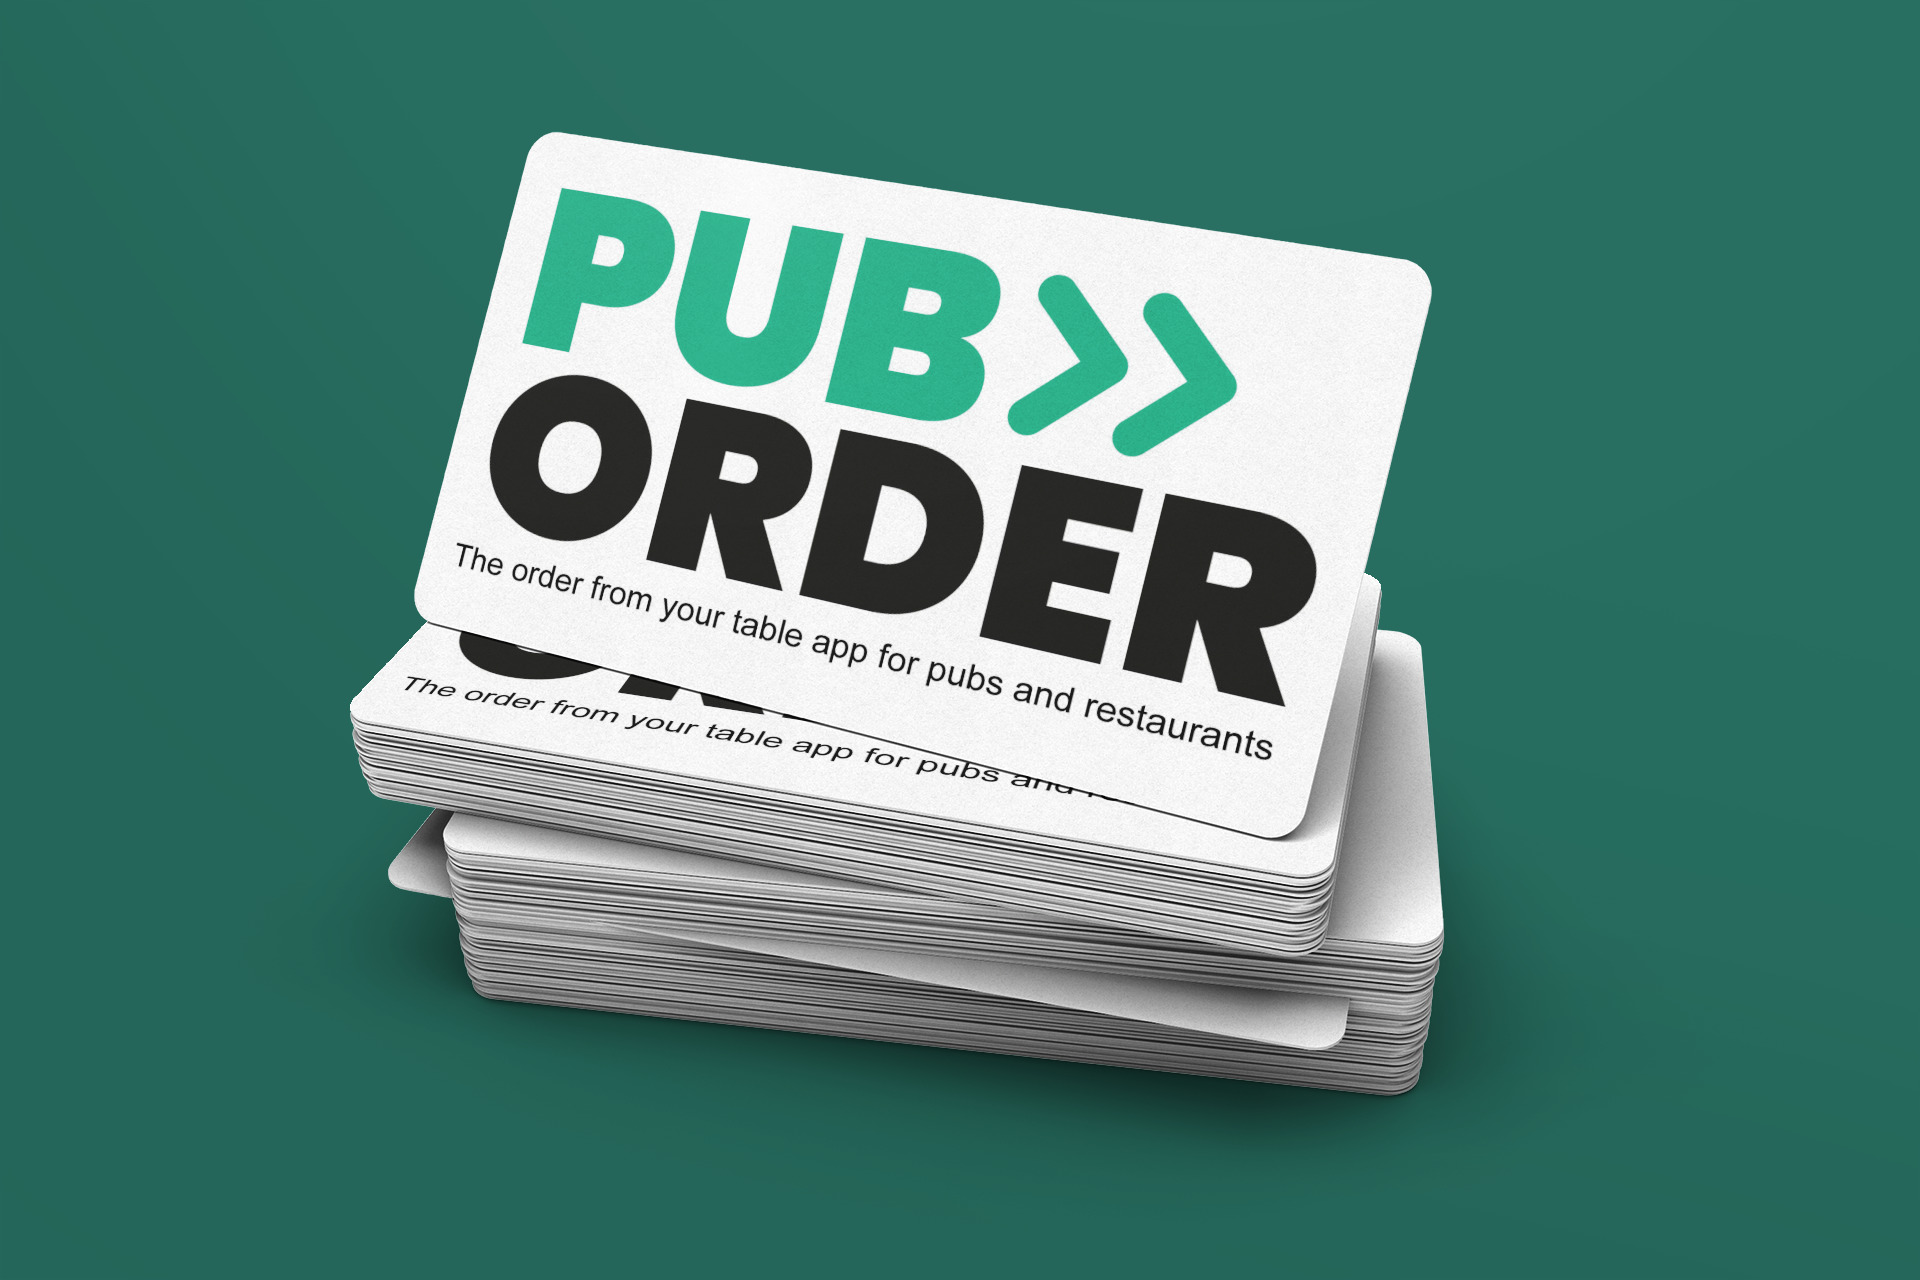 Pub Order Brand Business Cards